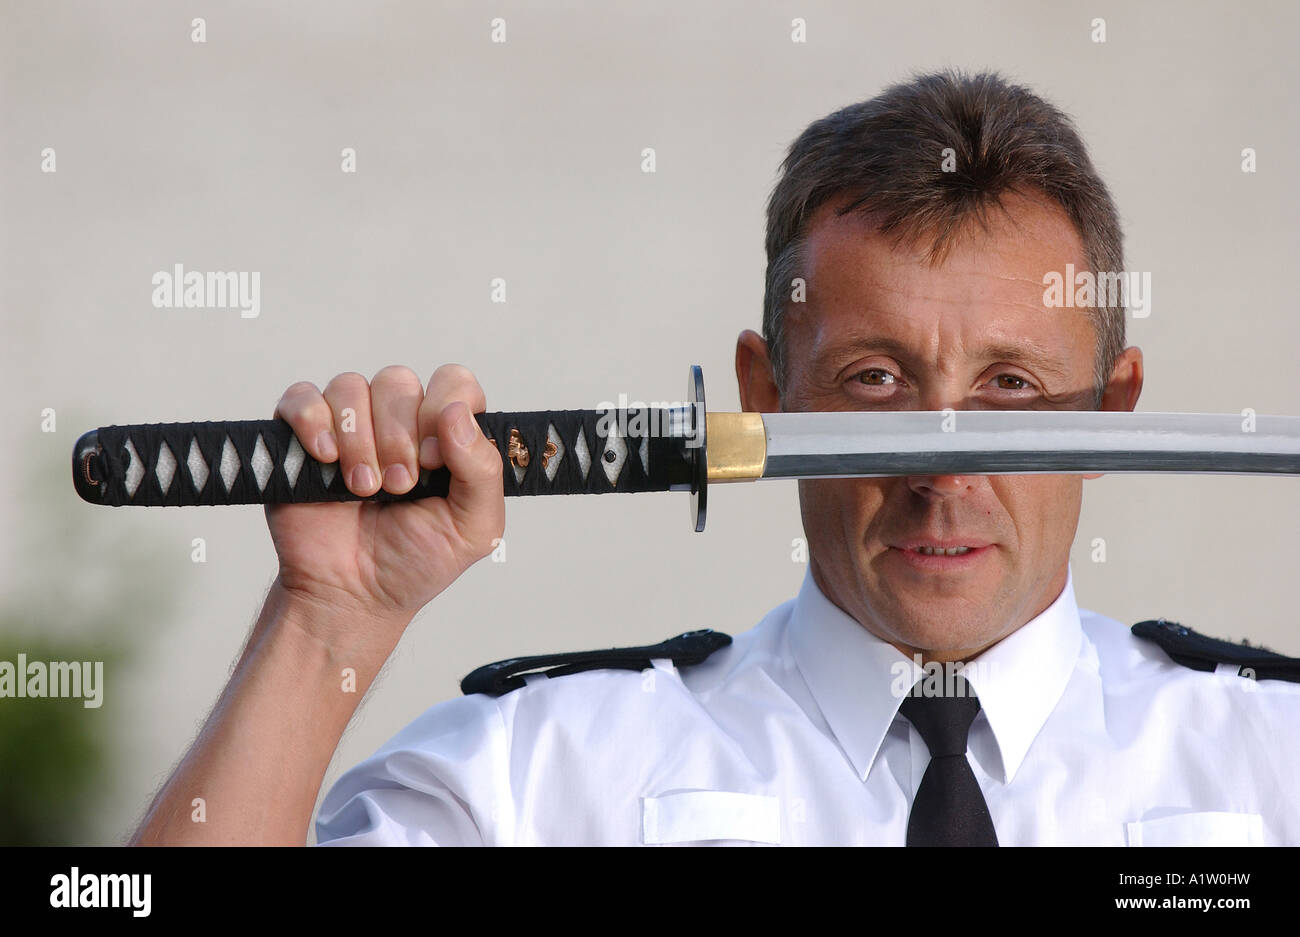 A policeman holding a samurai sword Stock Photo